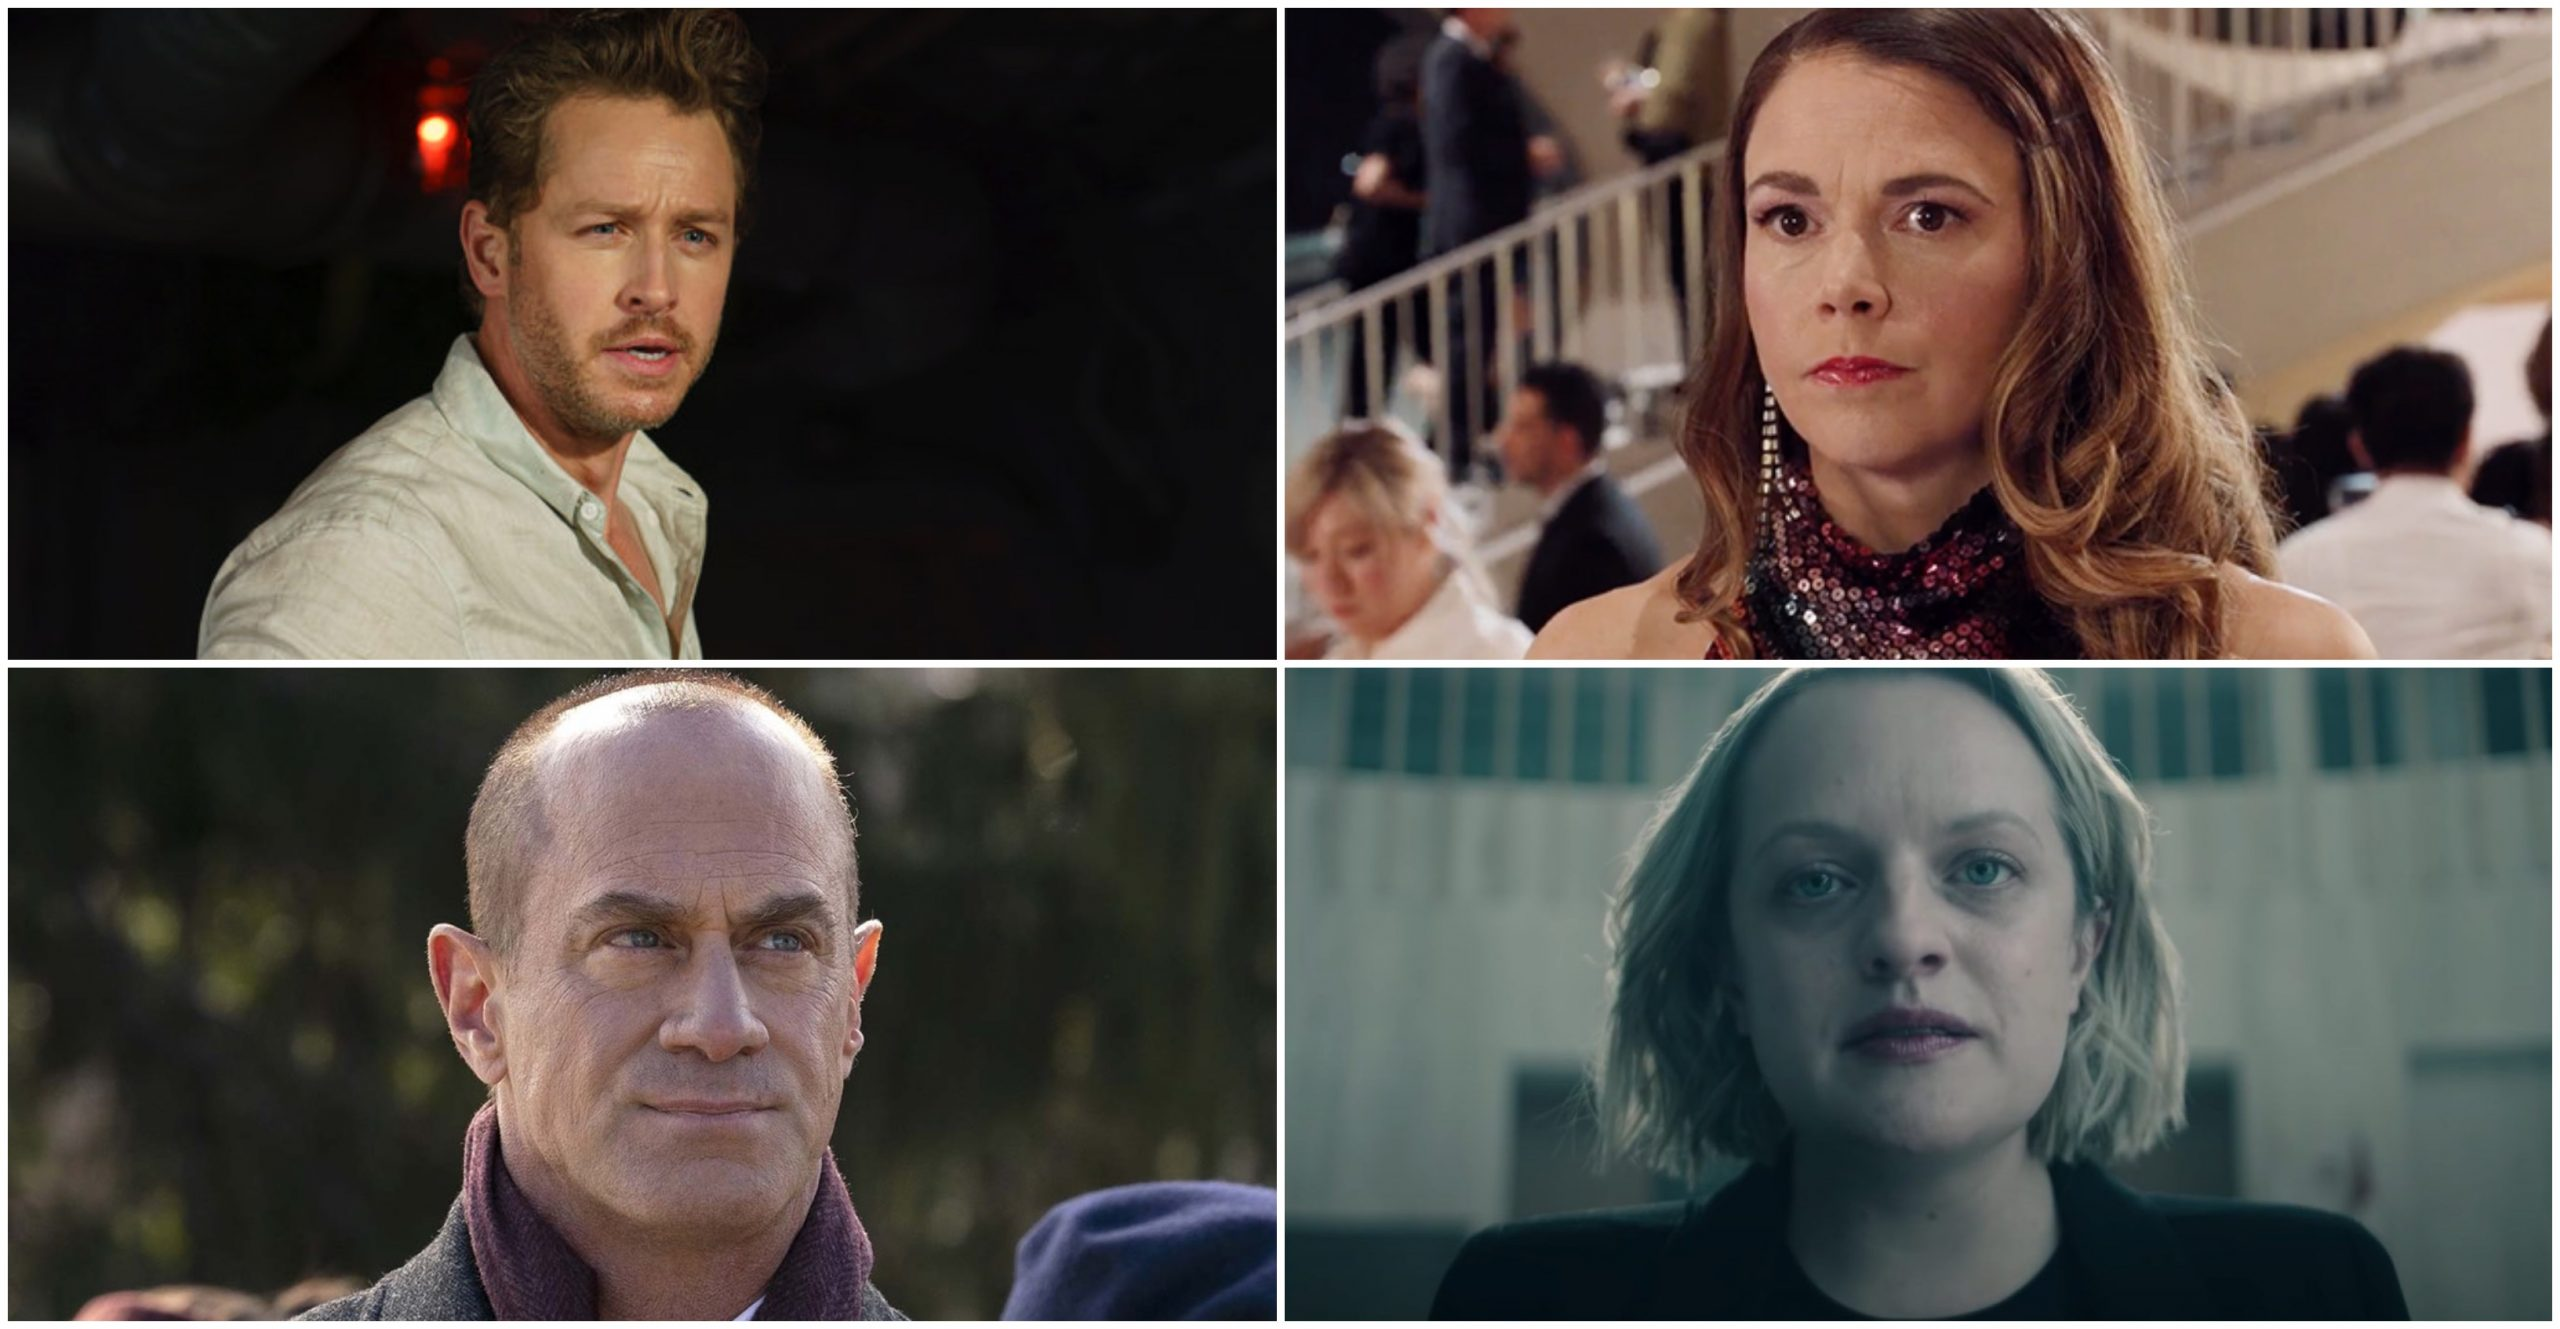 What to Watch April 2021 Guide: Manifest, Younger, The Handmaids Tale, and MORE!